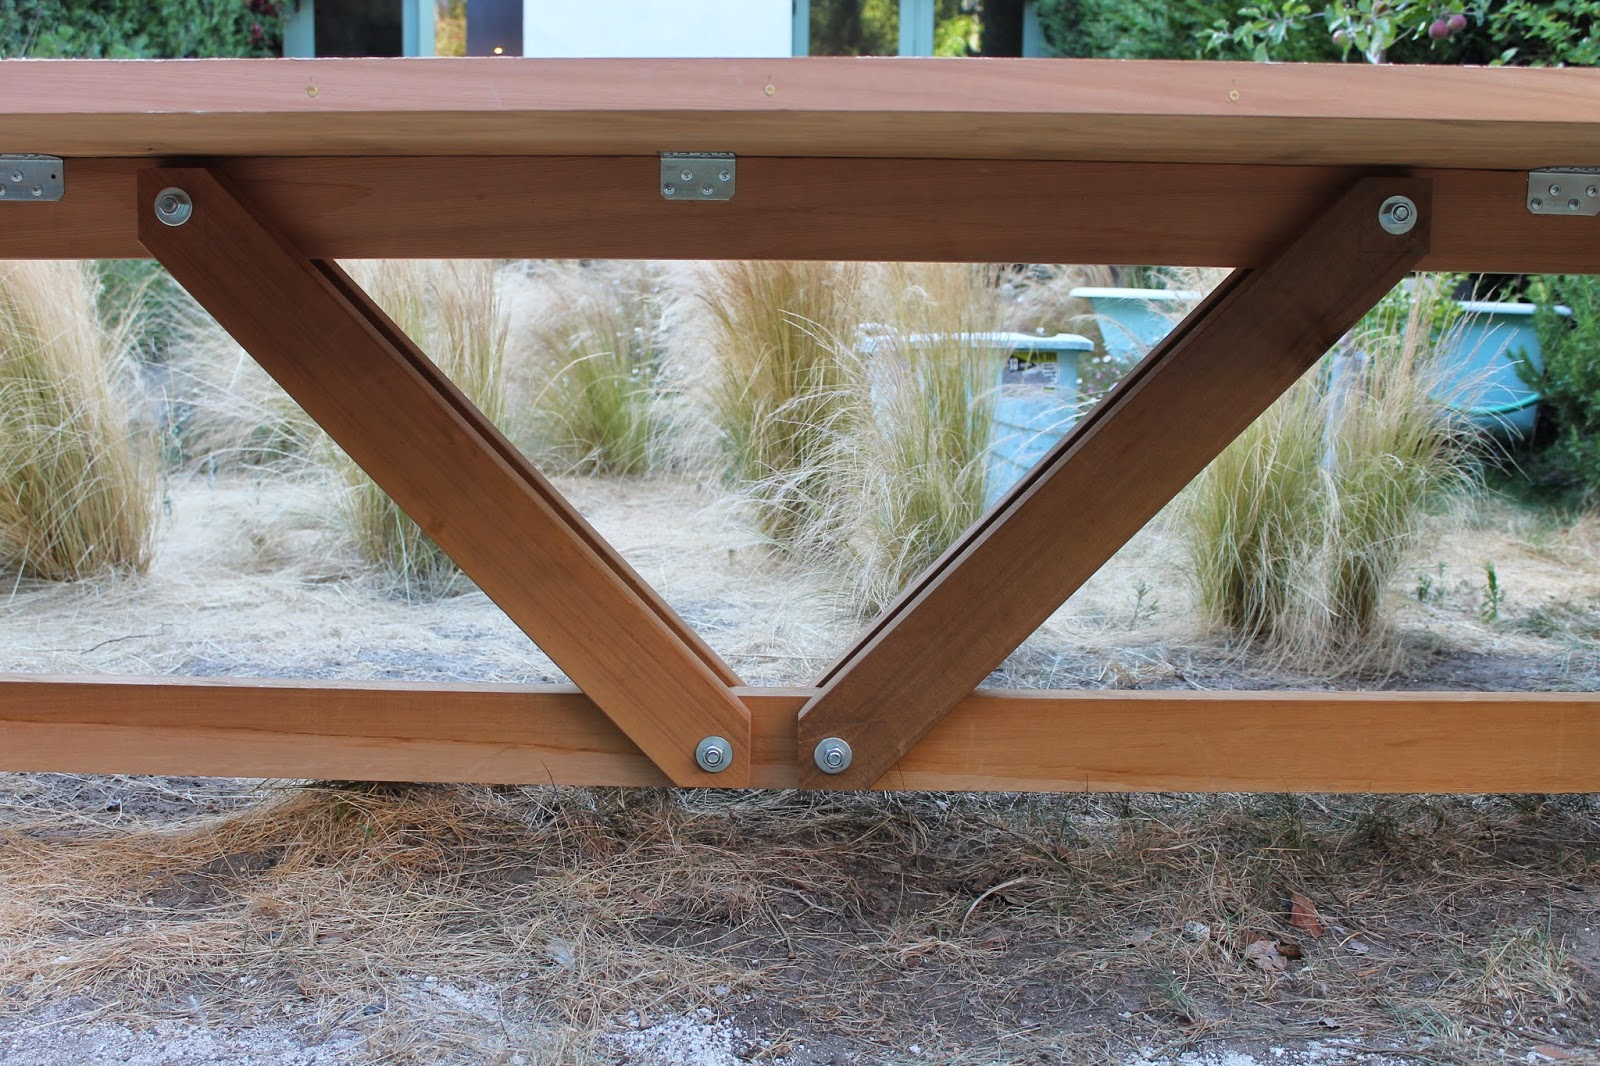 The Shingled House How To Build A Picnic Table Part One